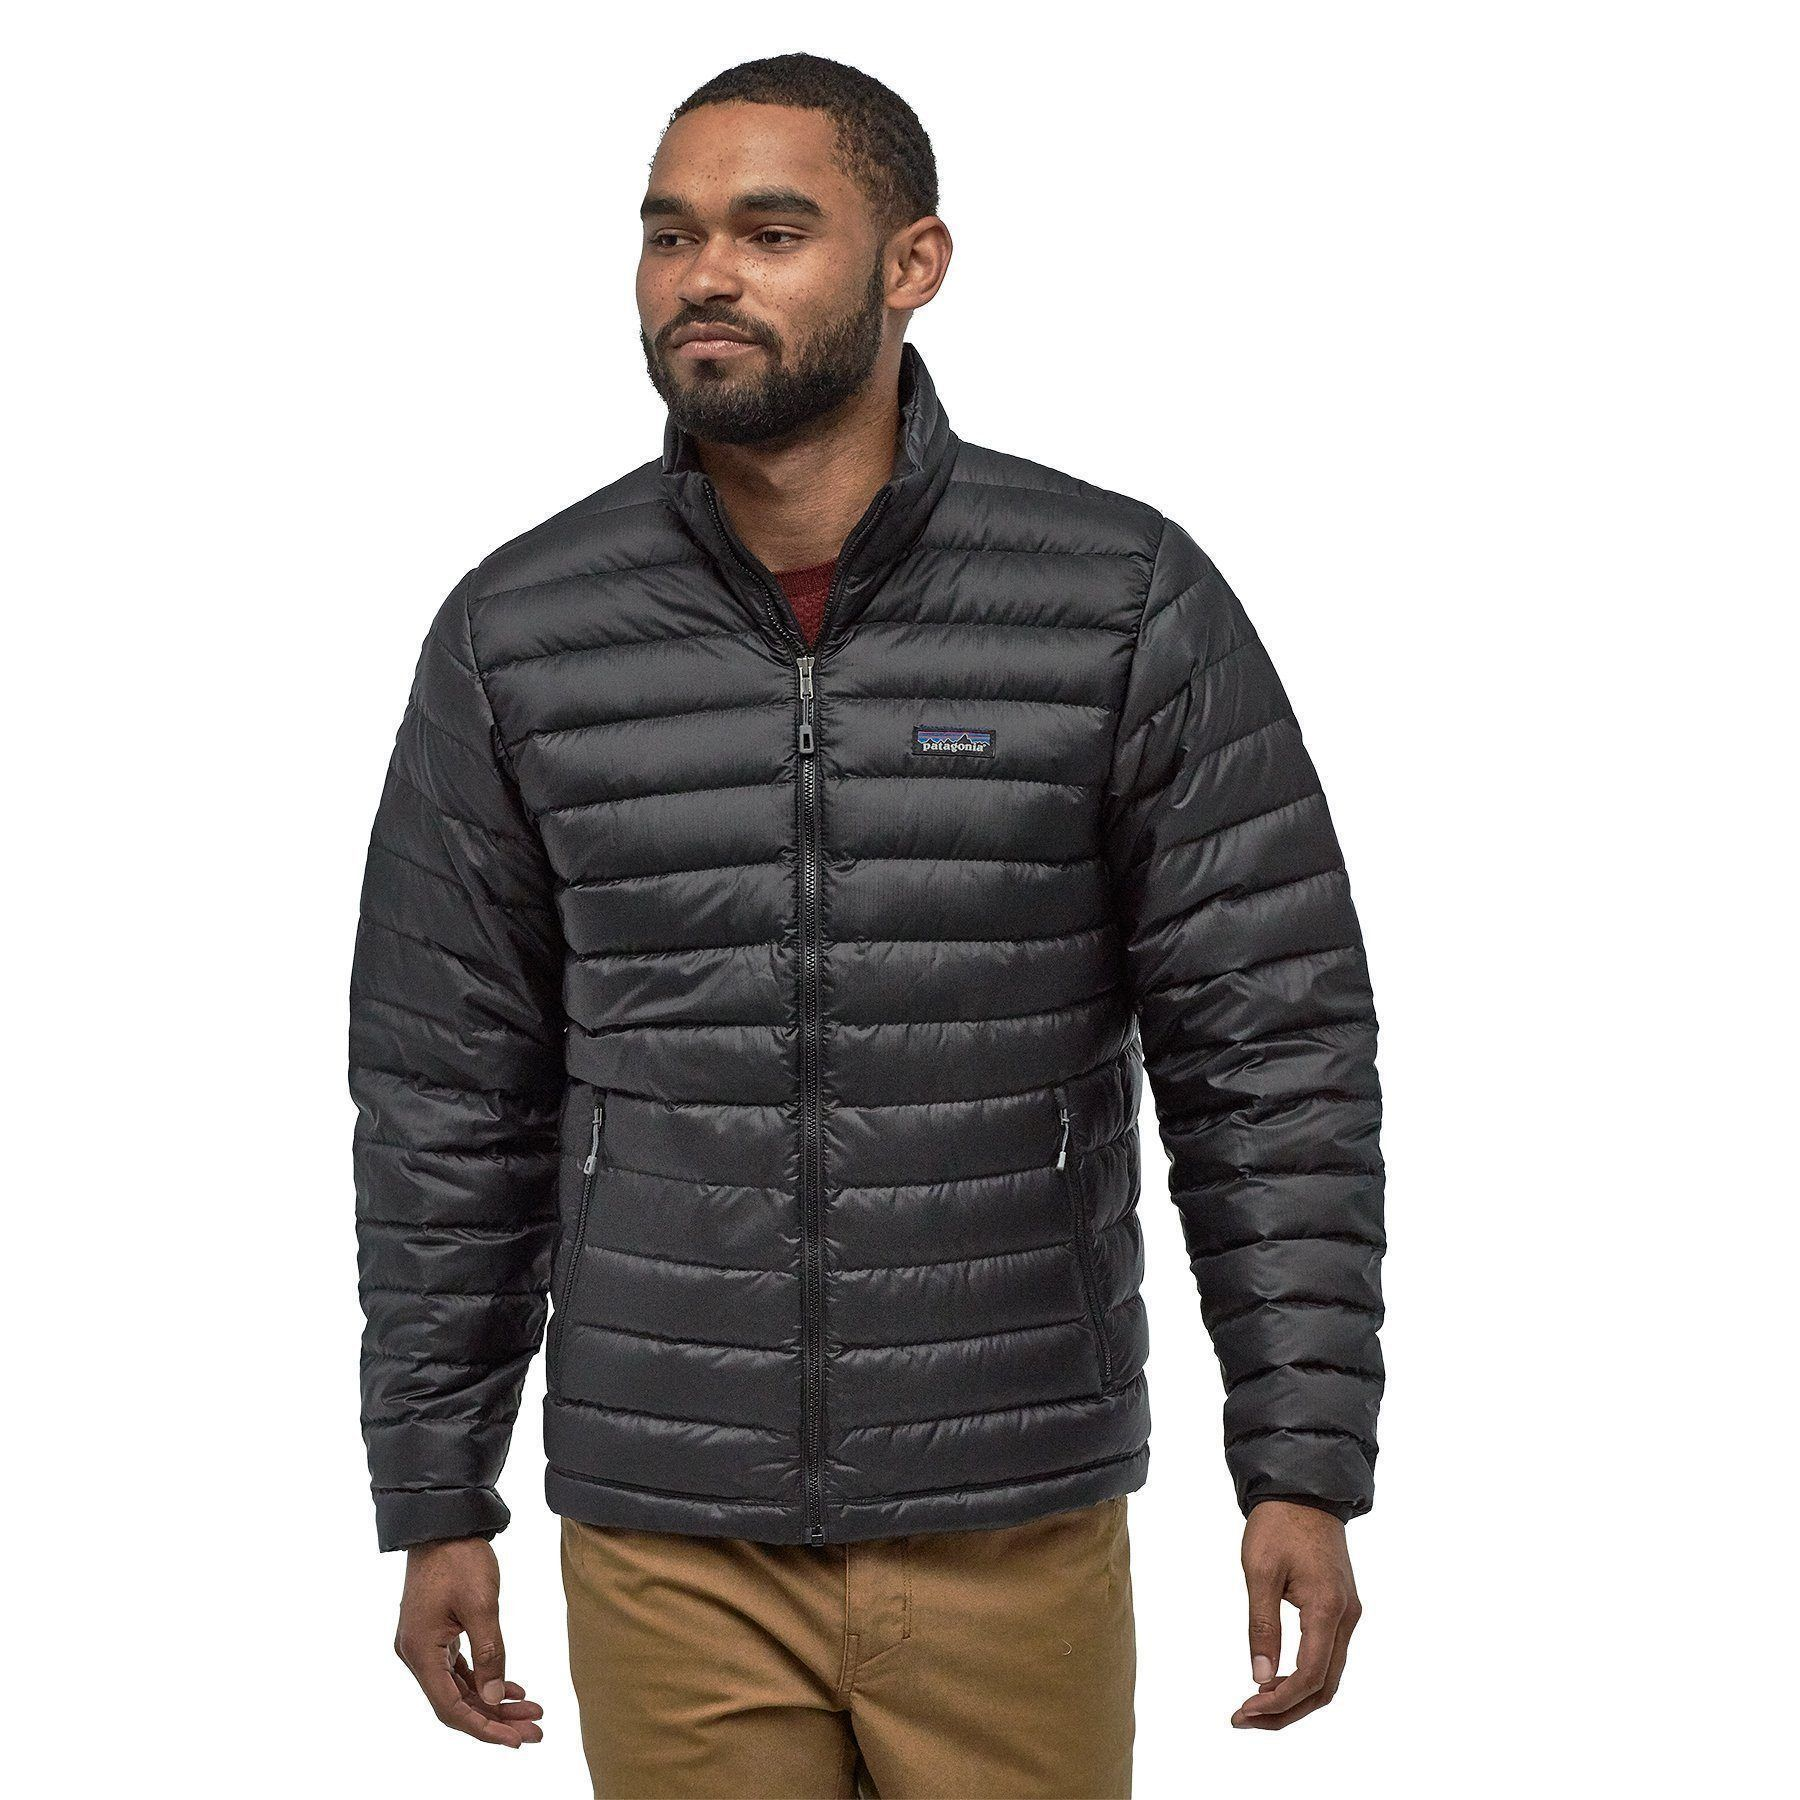 Patagonia - M's Down Sweater Jacket - Ethical down/Recycled polyester - Weekendbee - sustainable sportswear